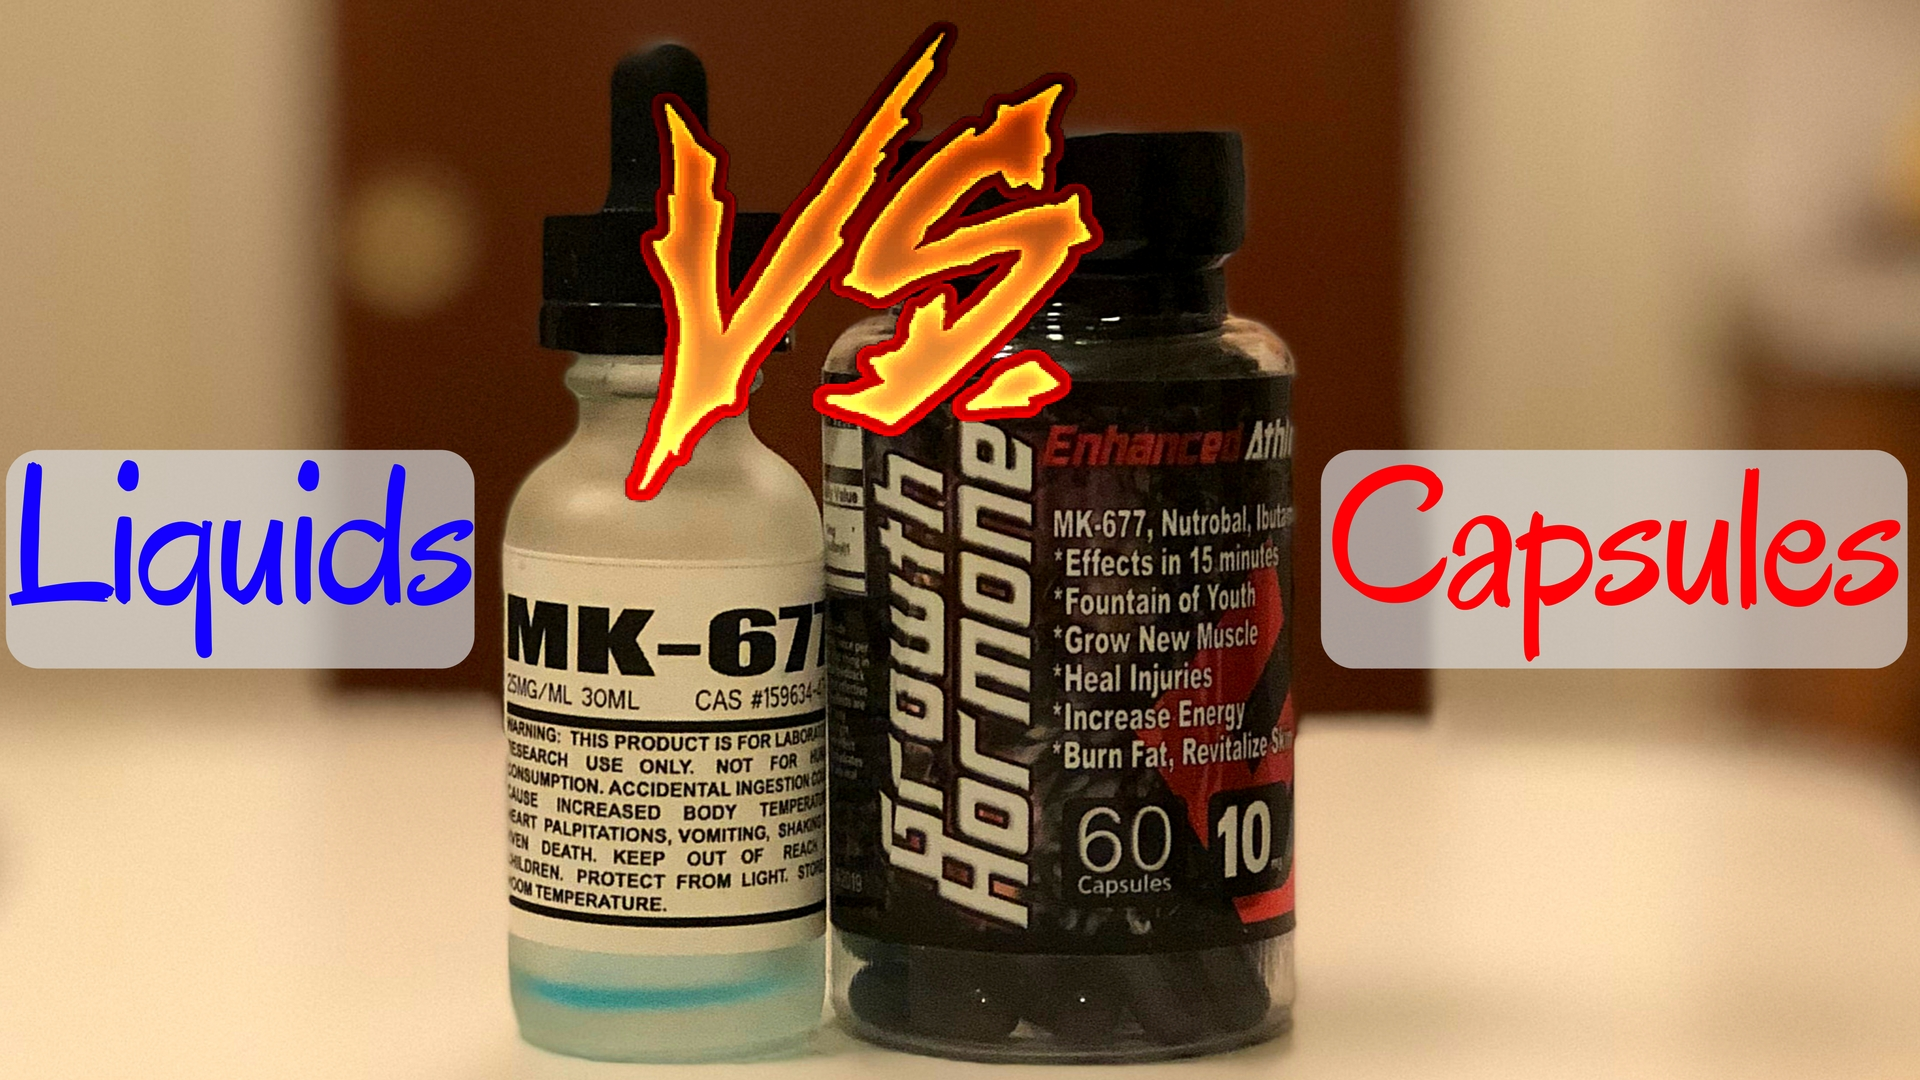 SARMs Liquid Vs Capsules - Bottle of superior peptides liquid MK-677 beside a bottle of Enhanced Athlete MK-677